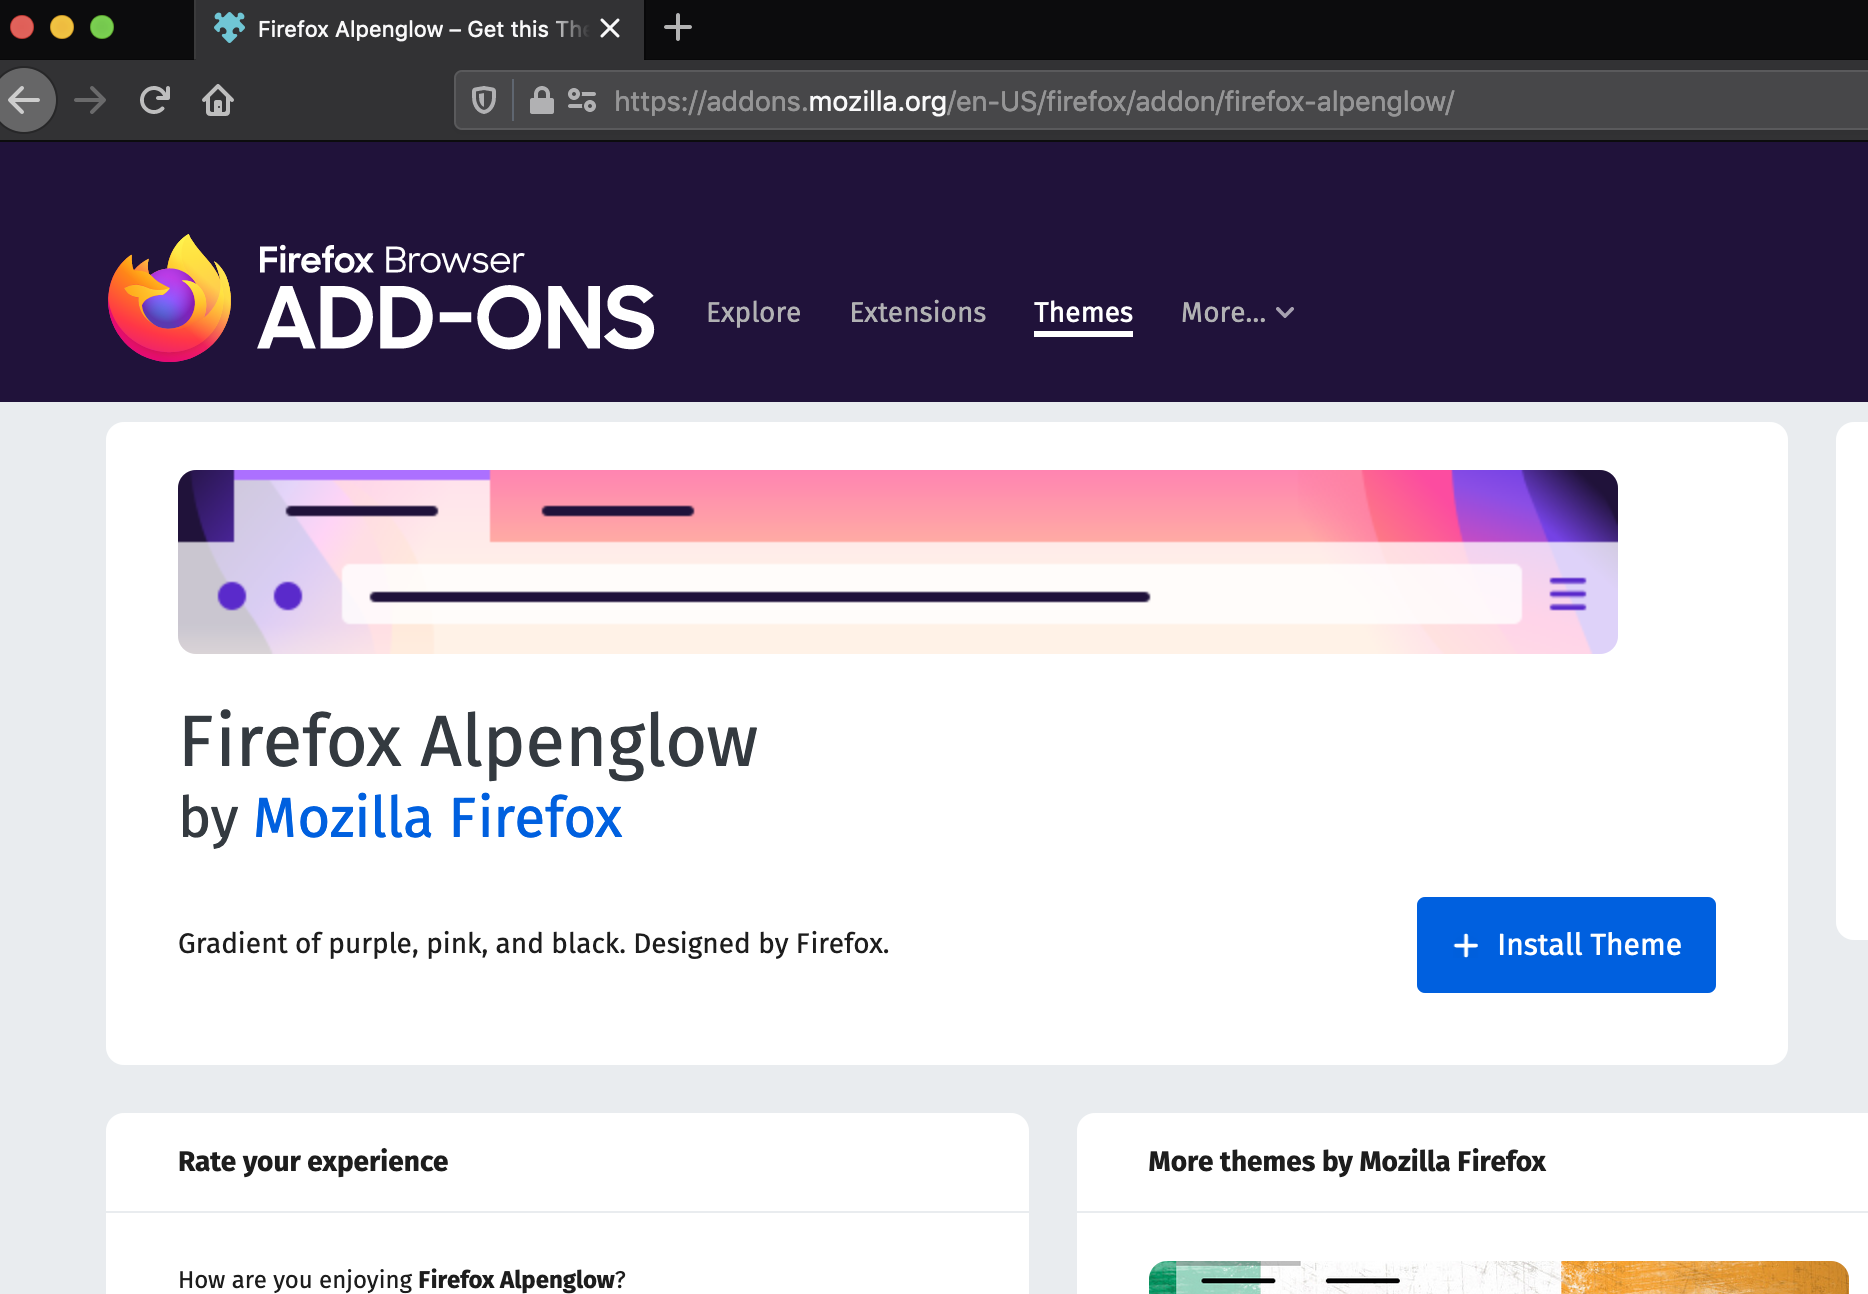 Browse to the Firefox Alpenglow theme add-on page.